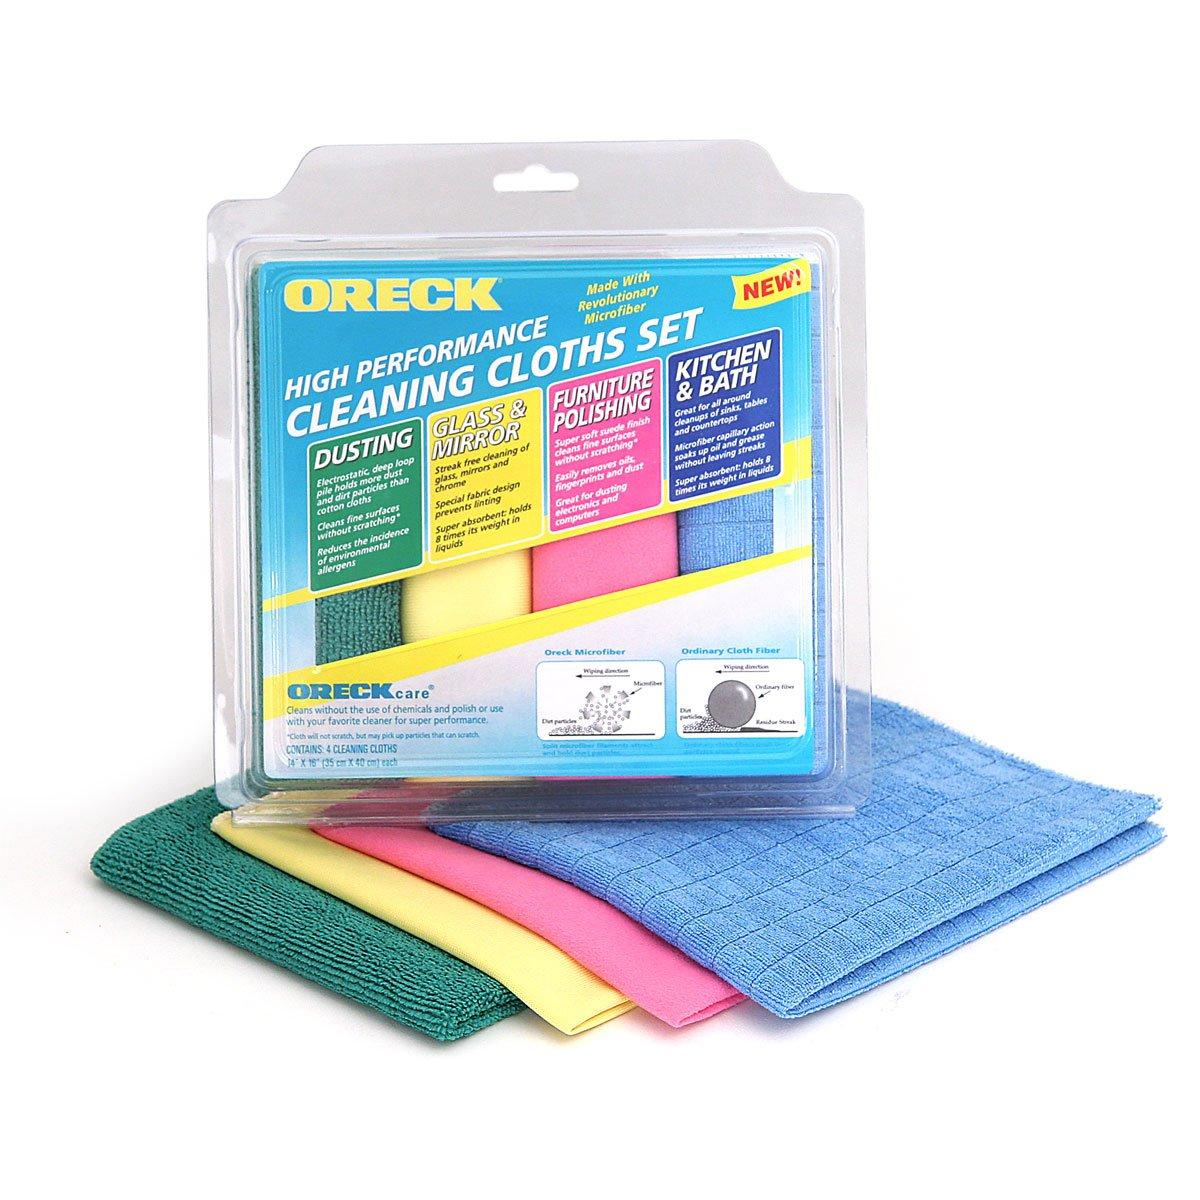 Shop for oreck vacuum cleaner bags online at Target. Free shipping & returns and save 5% every day with your Target REDcard.